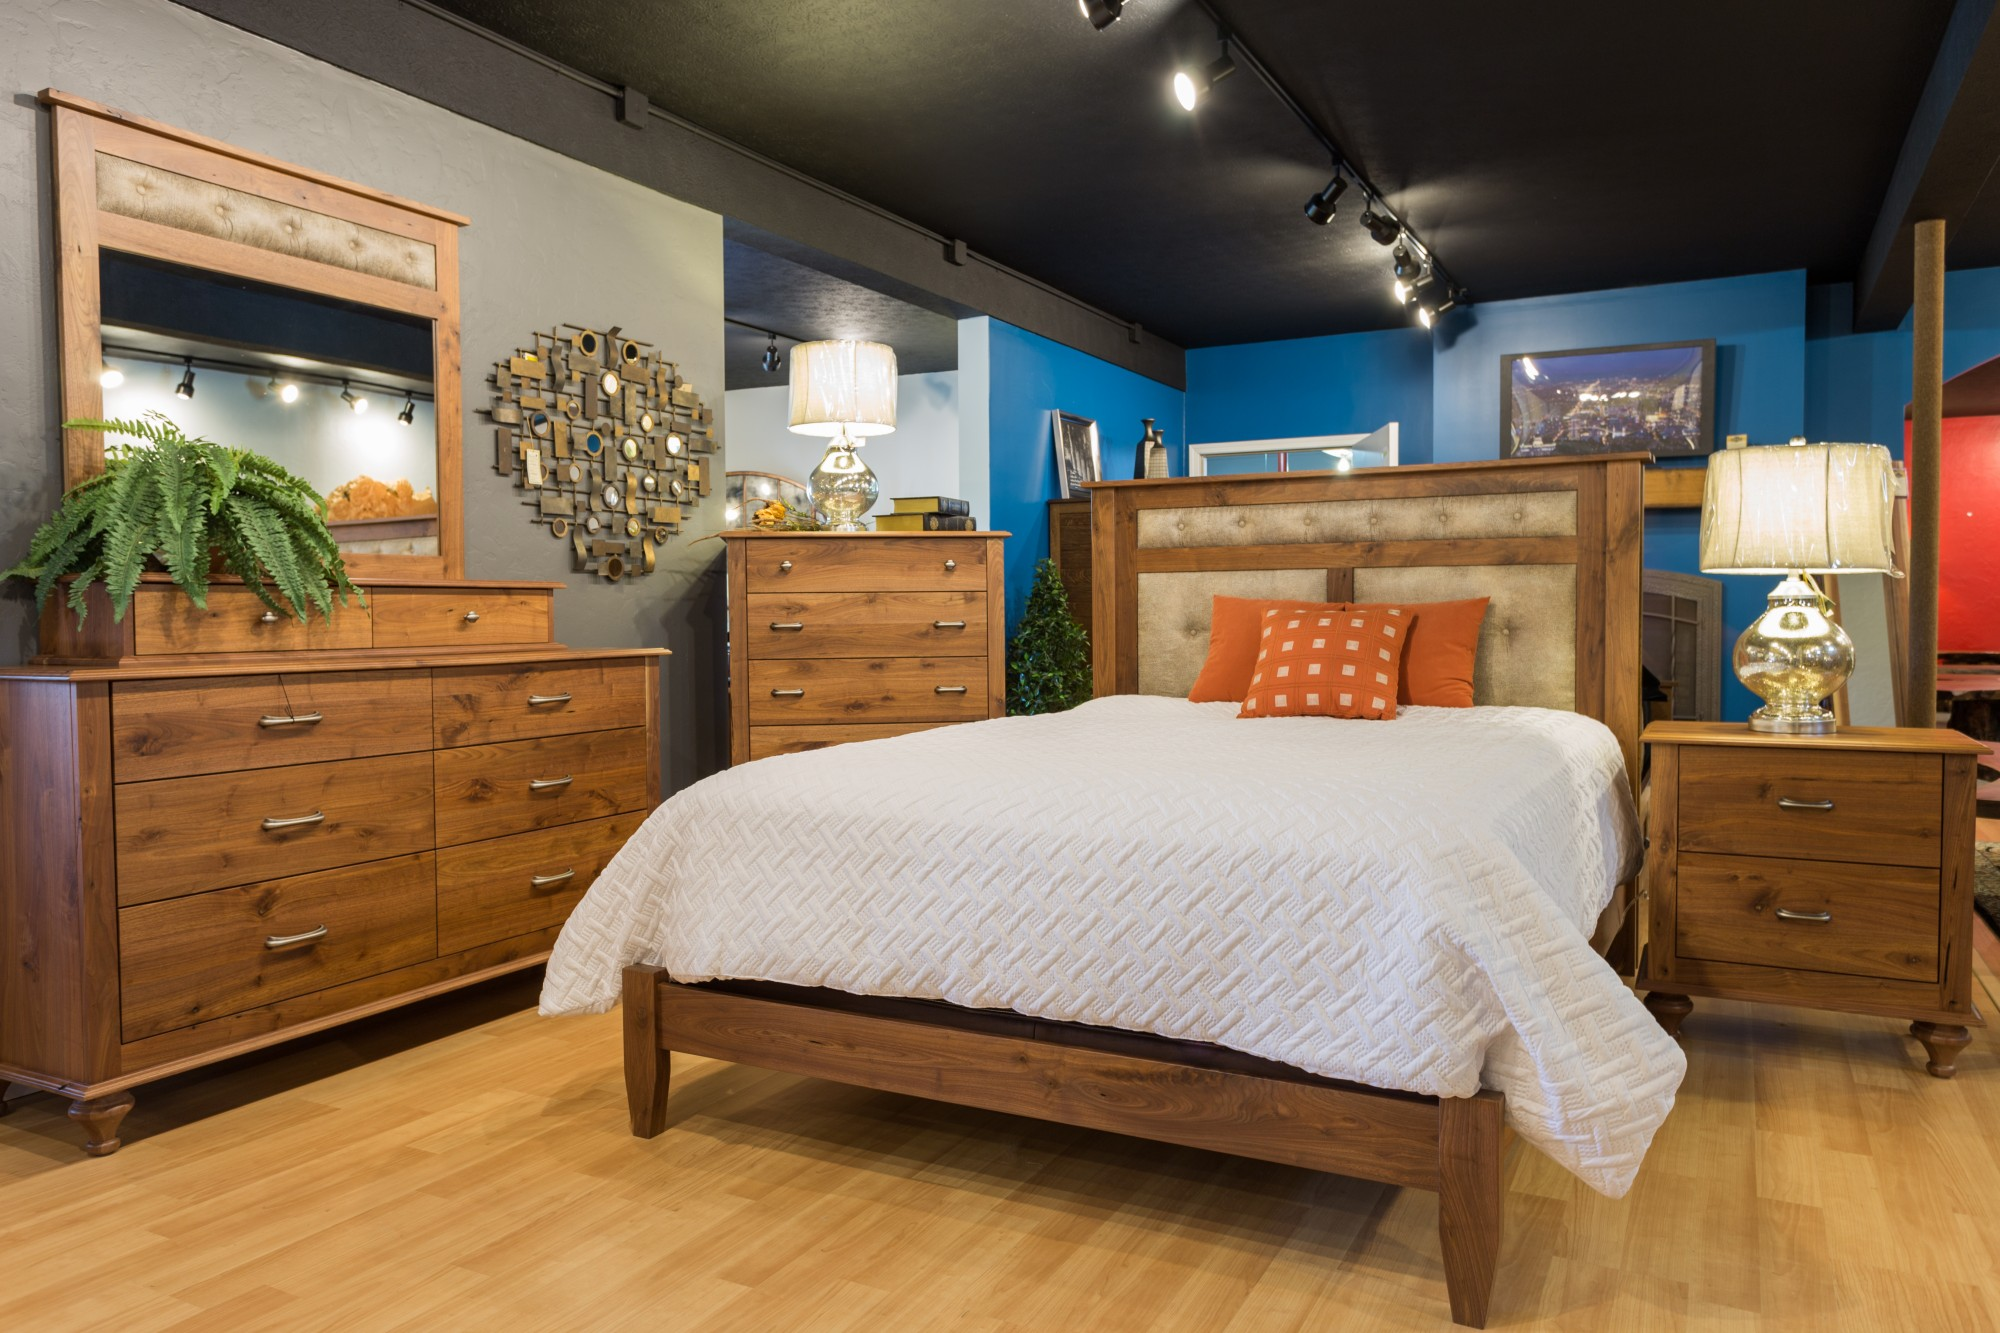 10% off Bedroom Furniture and Mattress Sets to Begin 2019